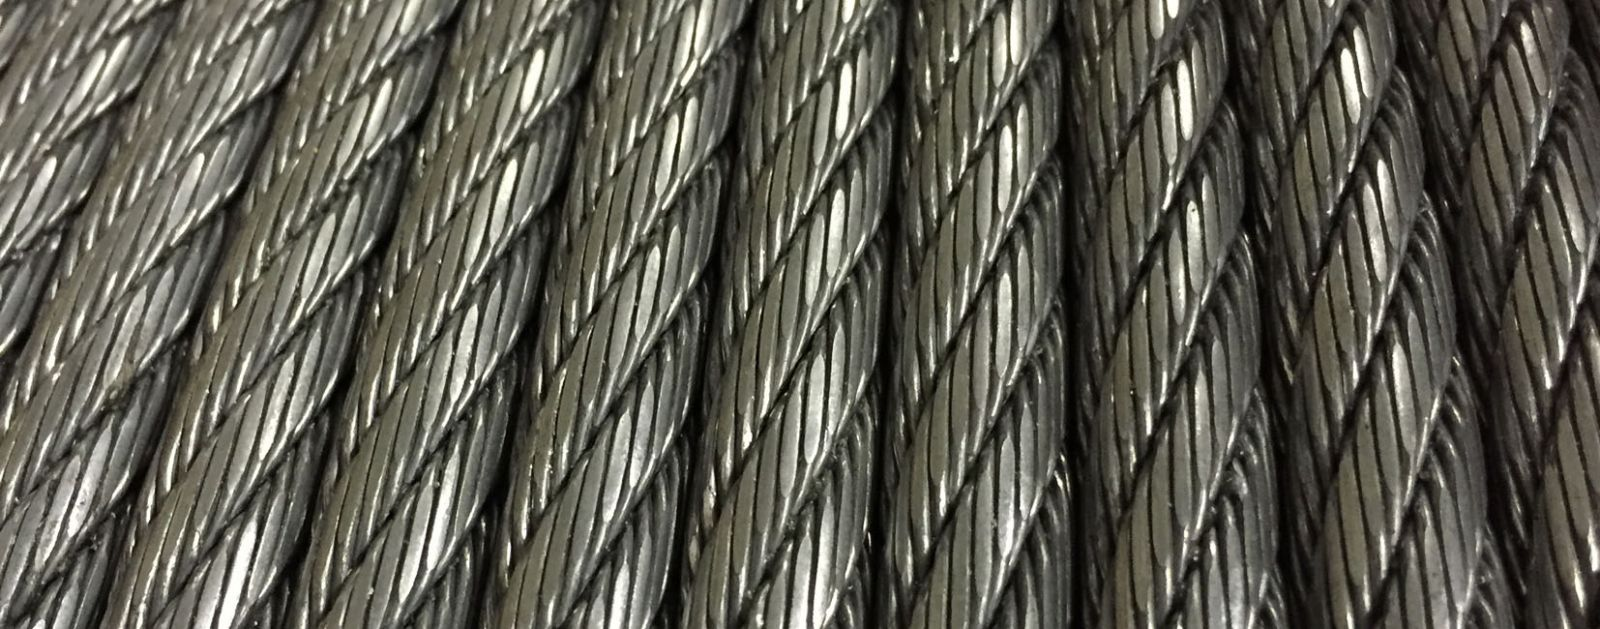 3/4 Inch 6x26 Swaged Wire Rope | Bluejay Industrial Inc. - Hayden, ID